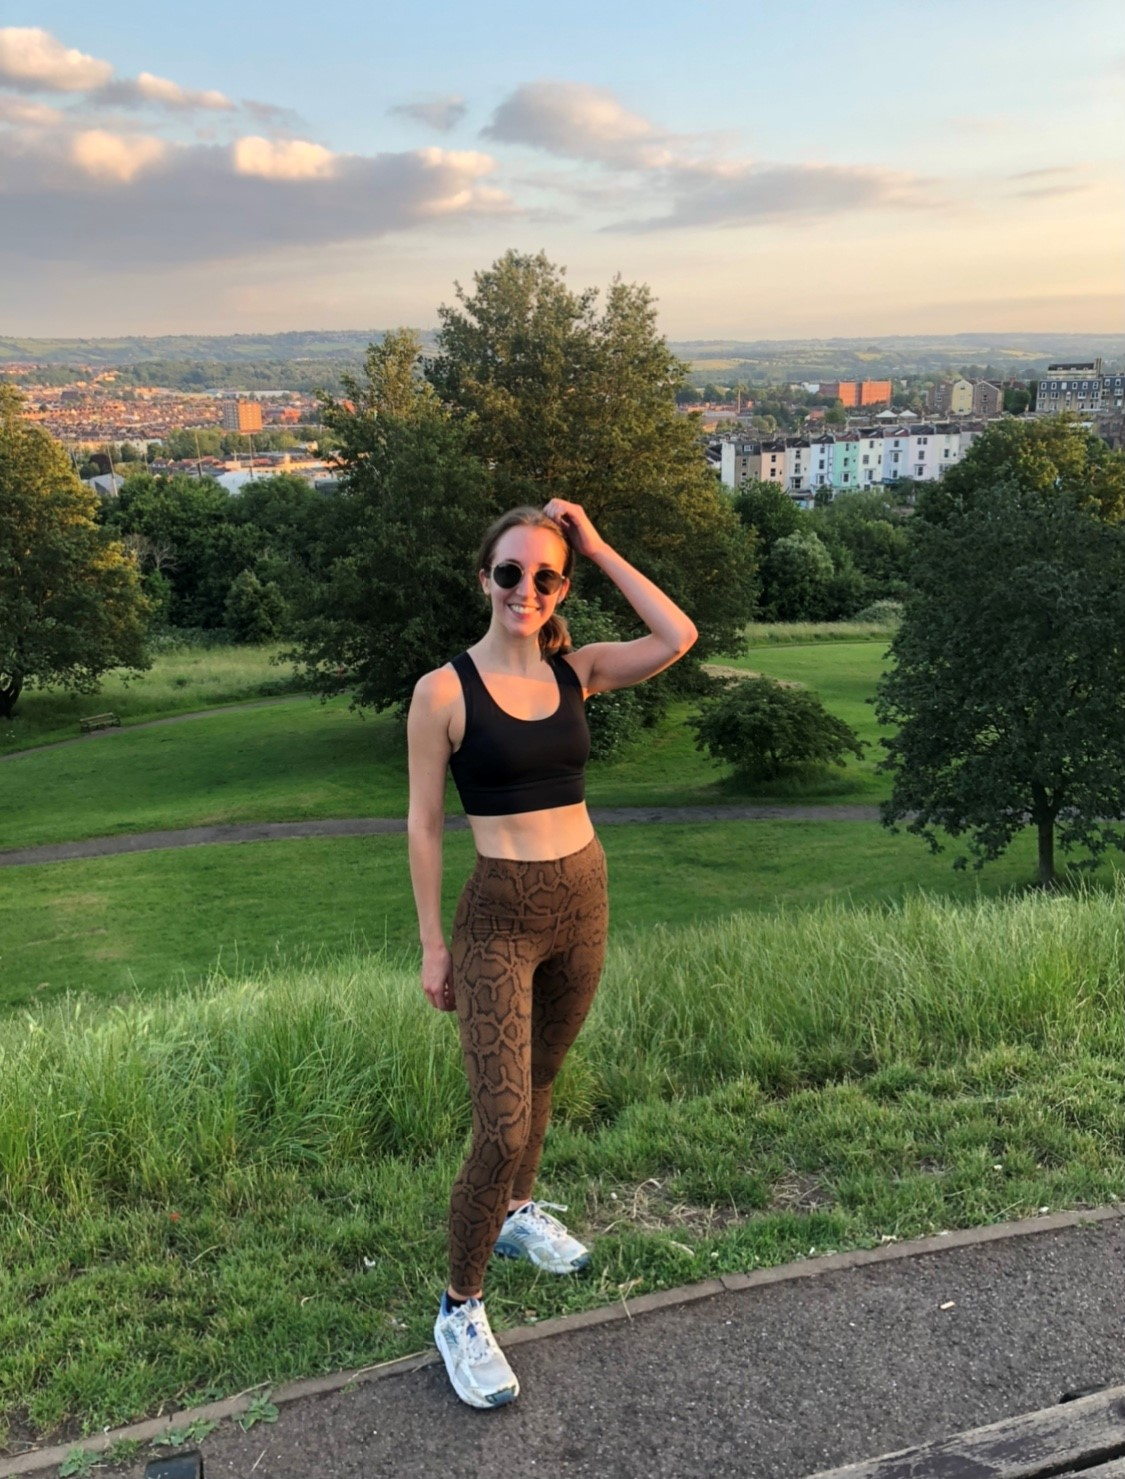 Cyan stands in running clothes at the top of a grassy hill. You can see a built up city behind her. She is wearing sunglasses and the sun is setting into the evening.